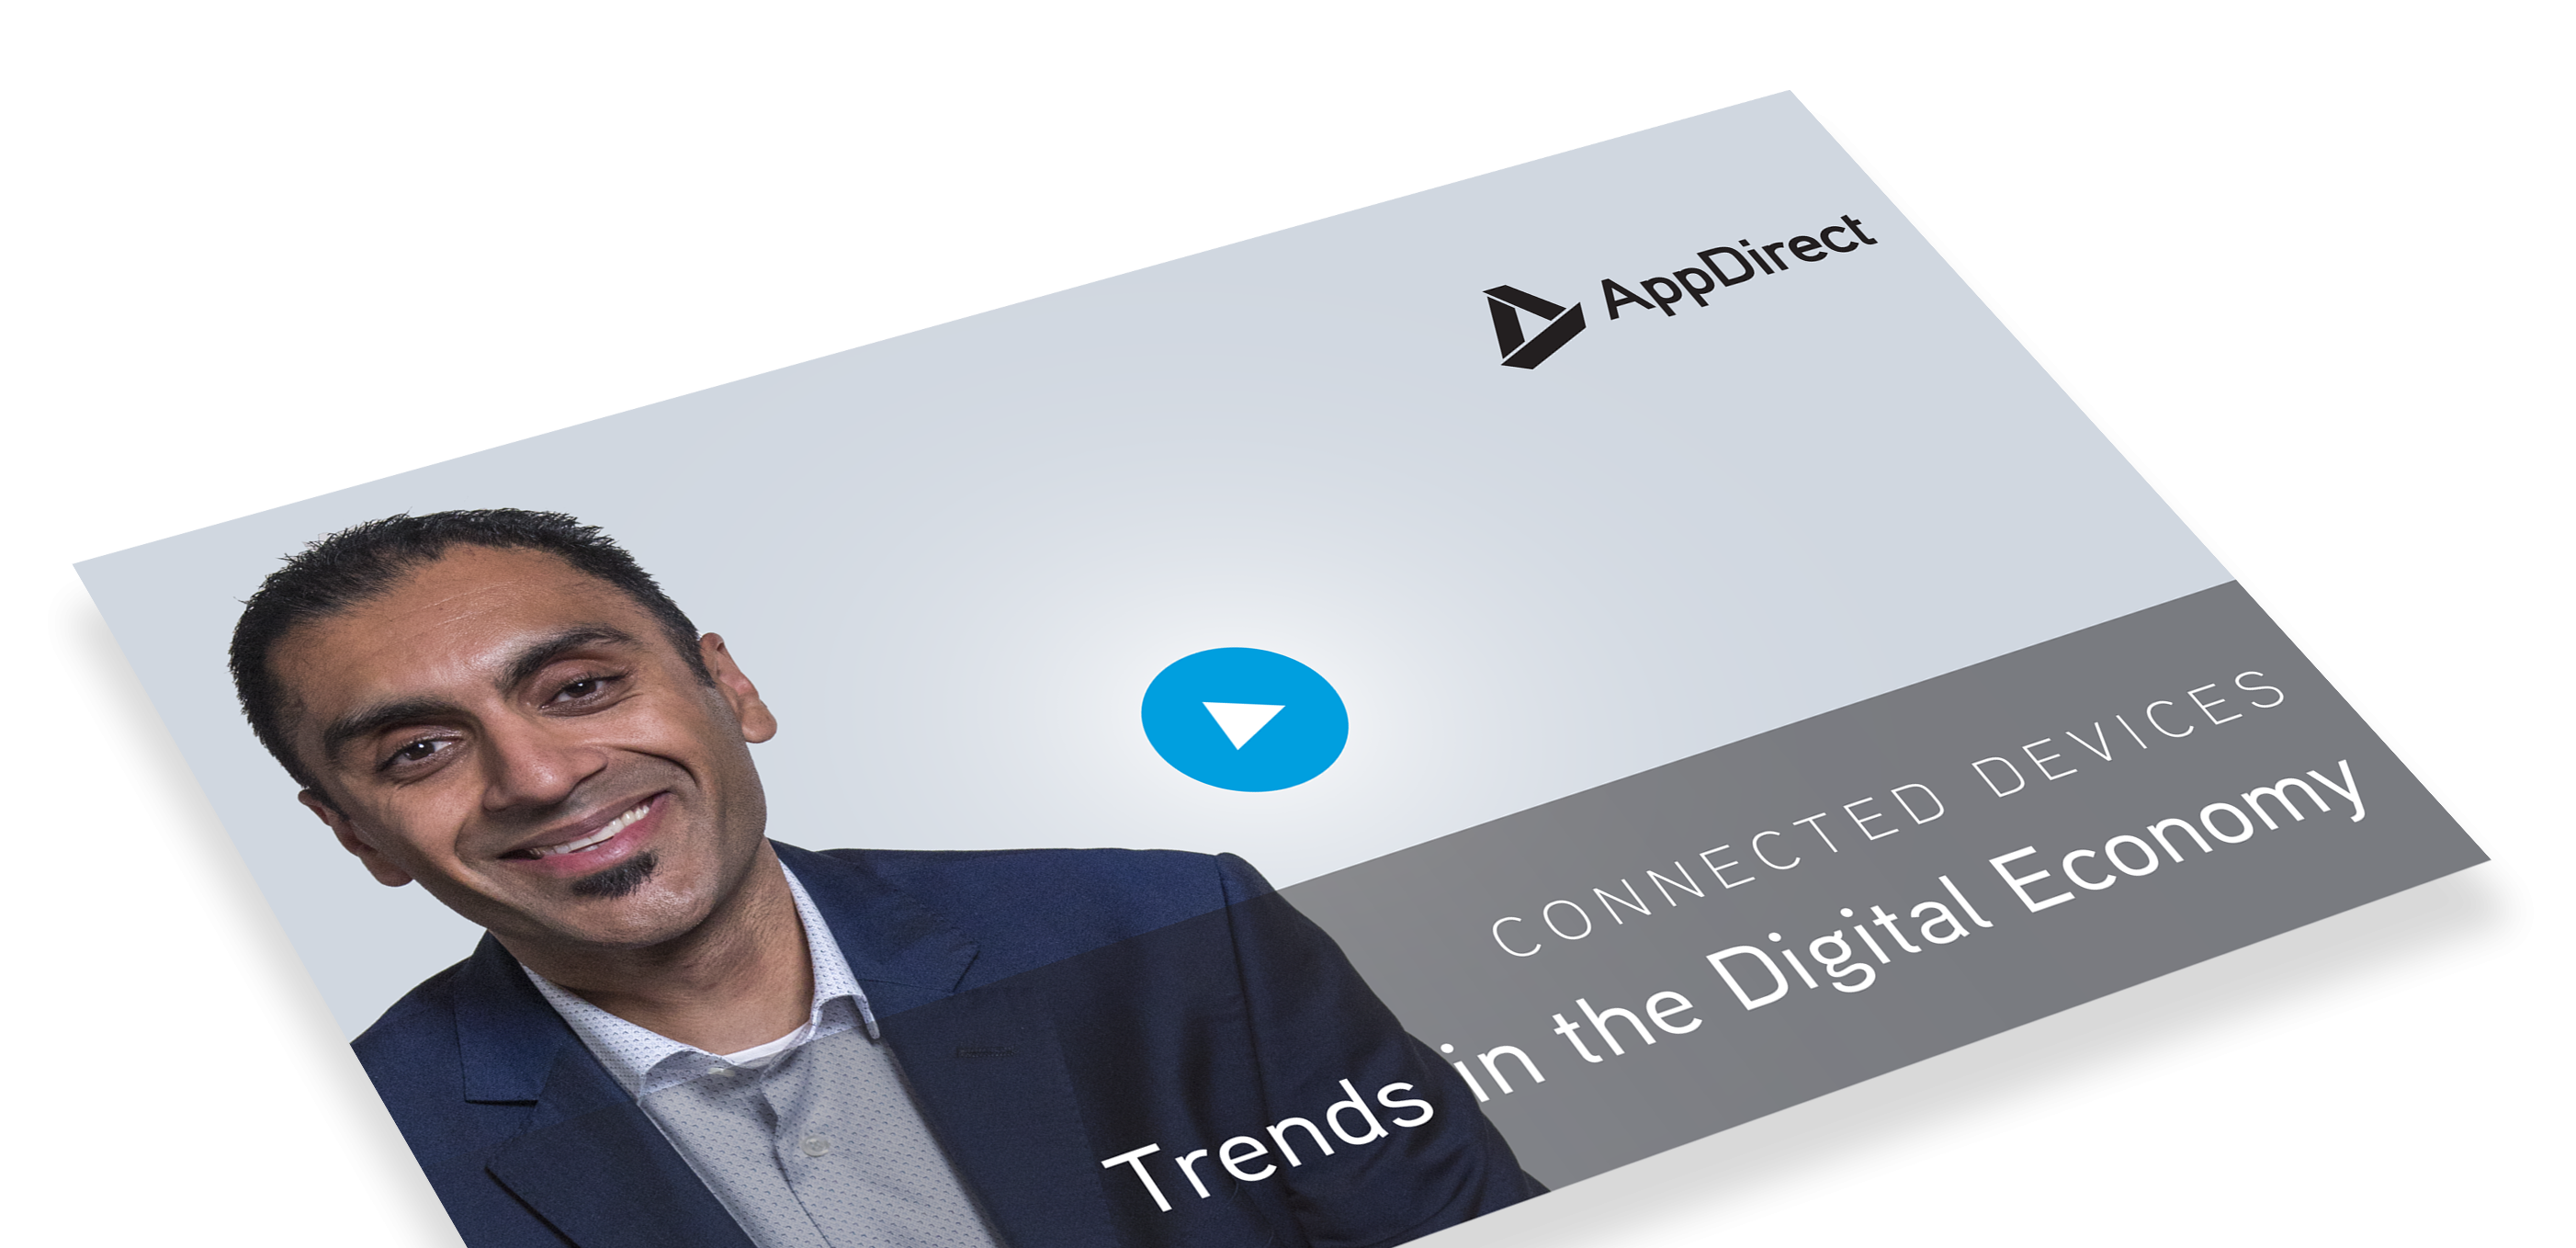 Connected Devices Trends in the Digital Economy